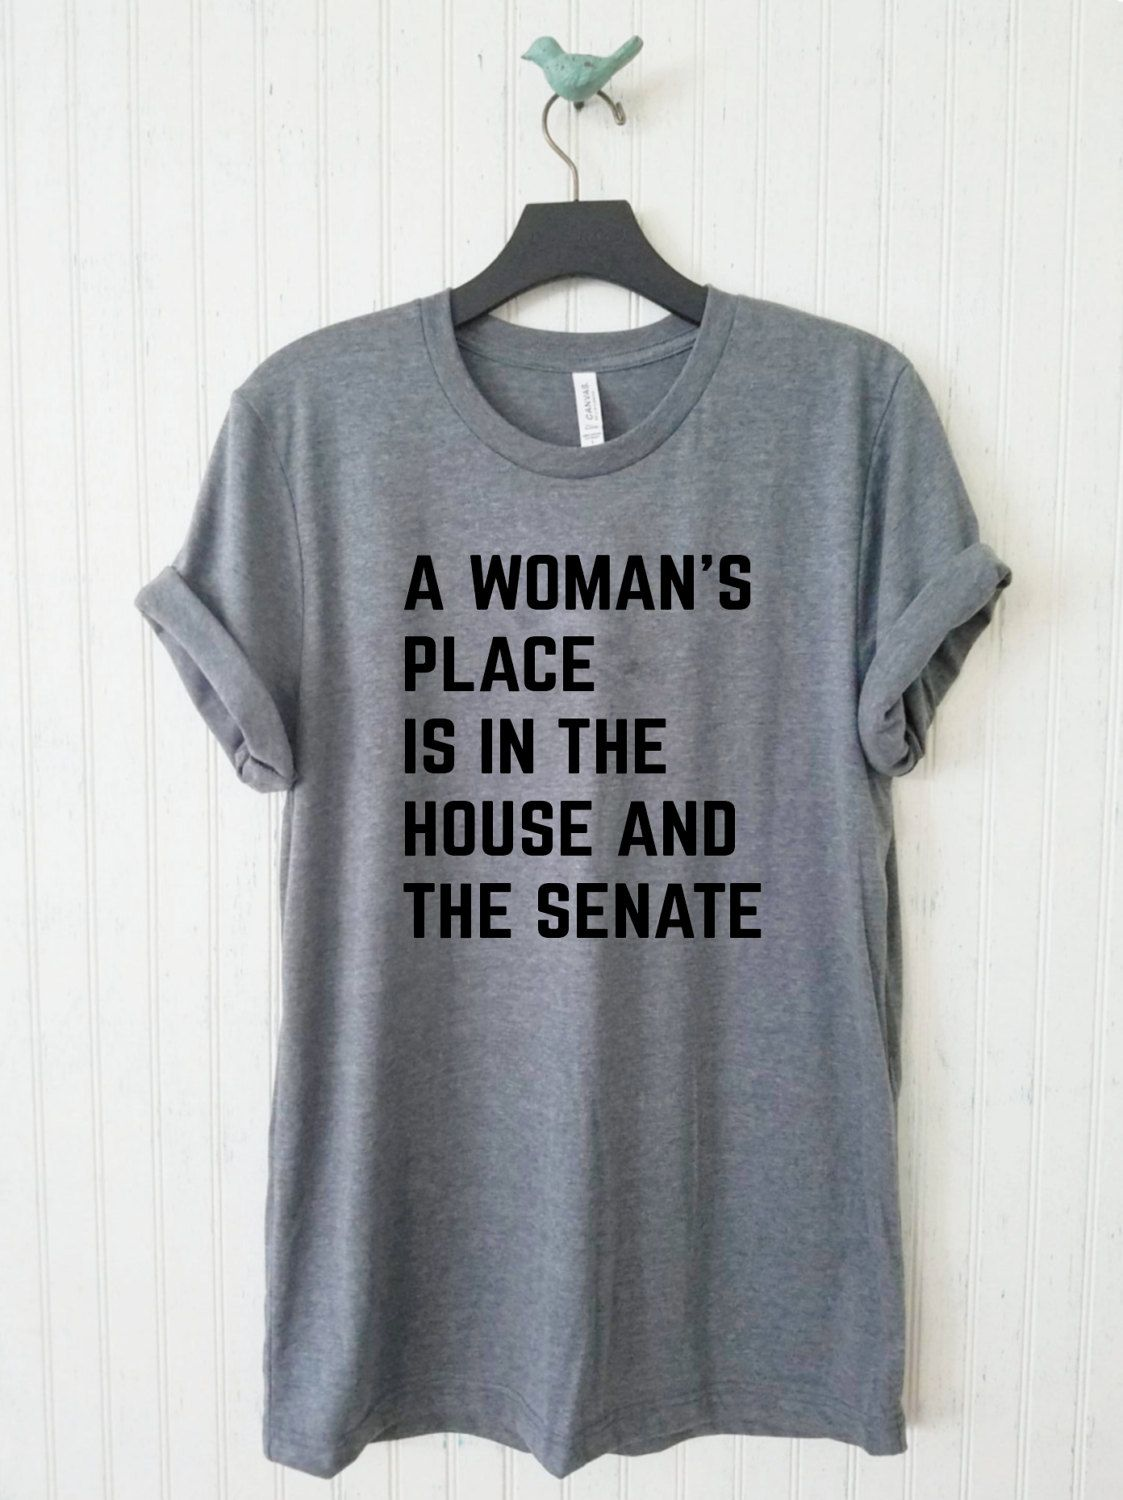 A woman's place is in the house and the senate raglan baseball tee; tshirt; TShirt for woman S8q8AX1yi